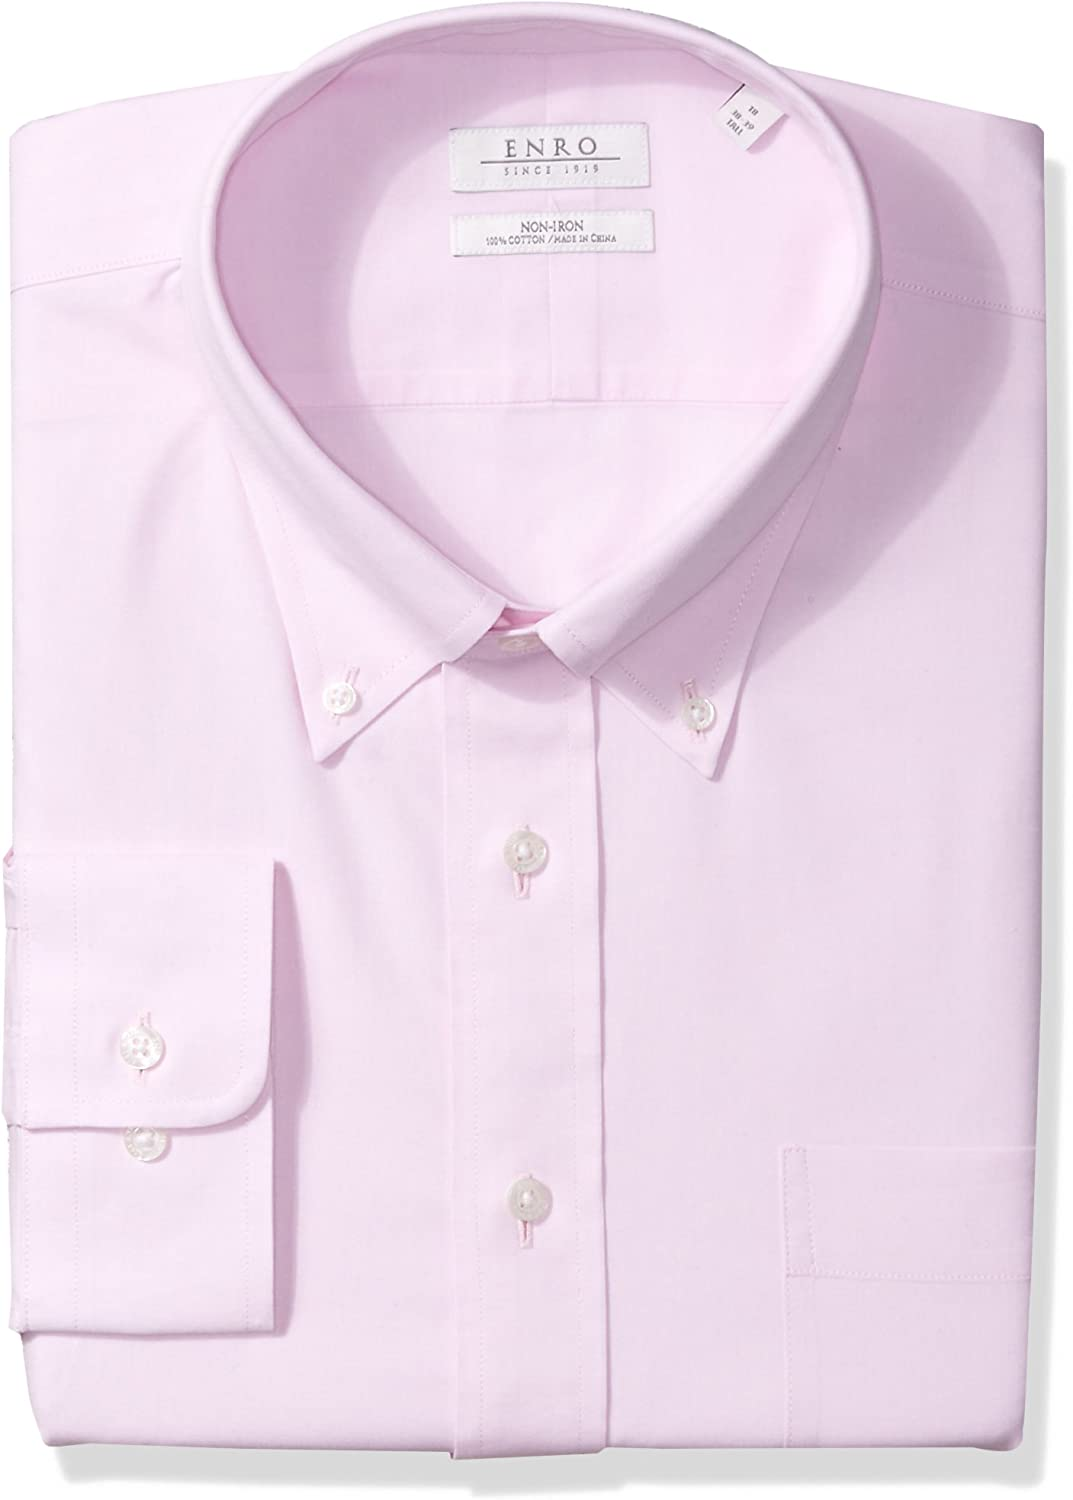 Enro Mens Big and Tall Non-Iron Big /& Tall Pinpoint Oxford Dress Shirt